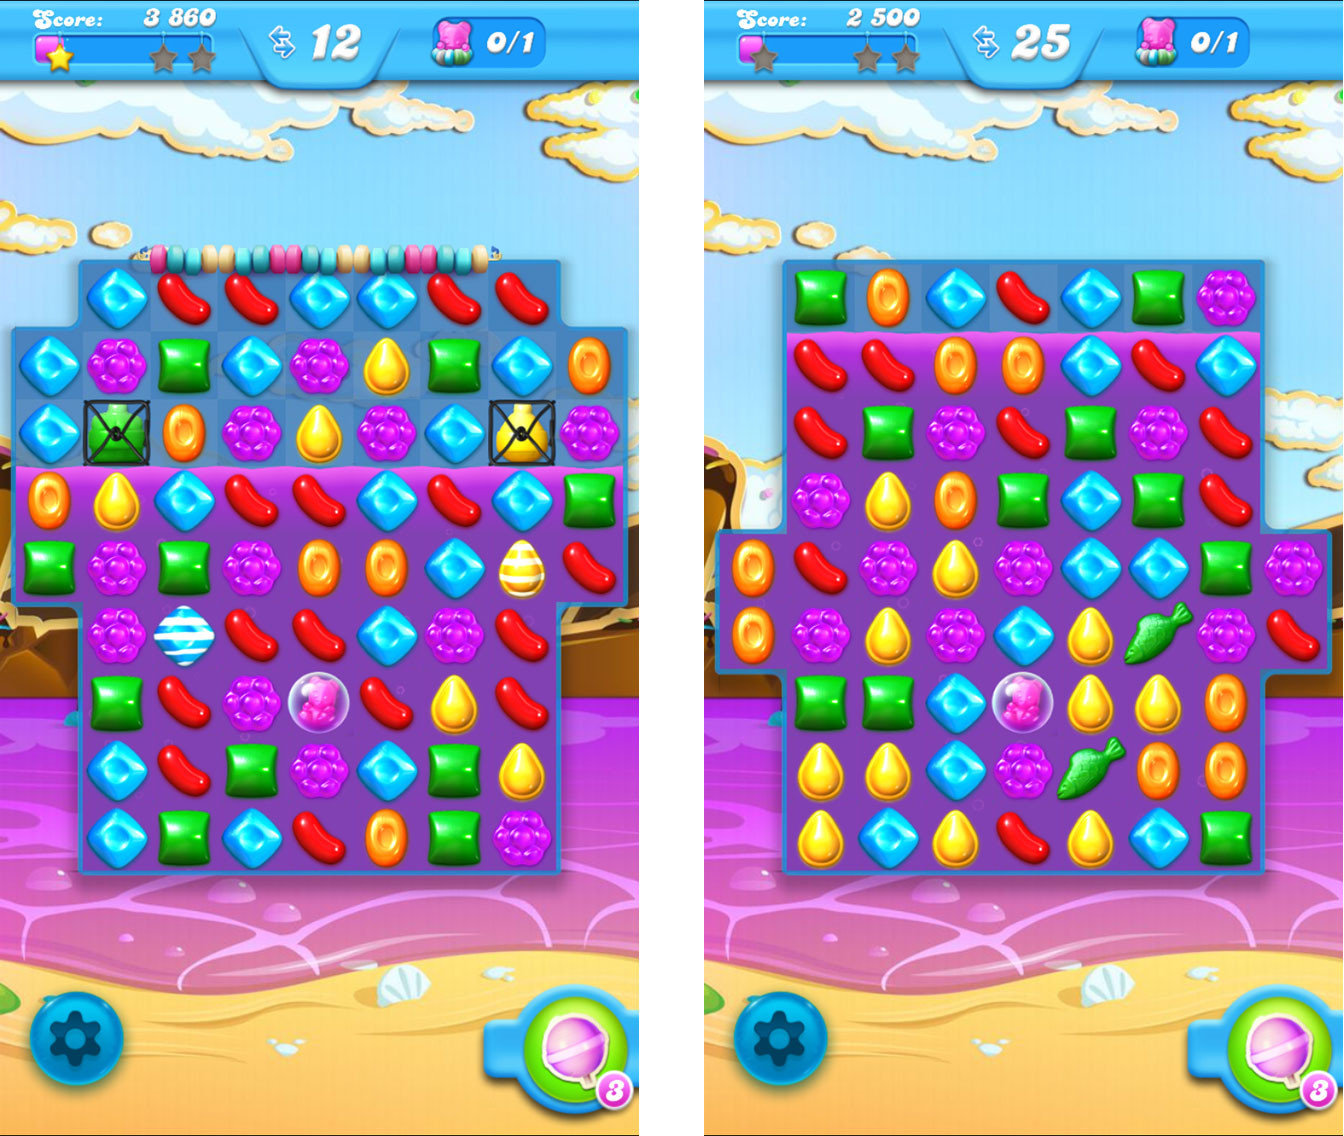 Candy Crush Soda Saga: Top 10 tips, hints, and cheats you need to know!